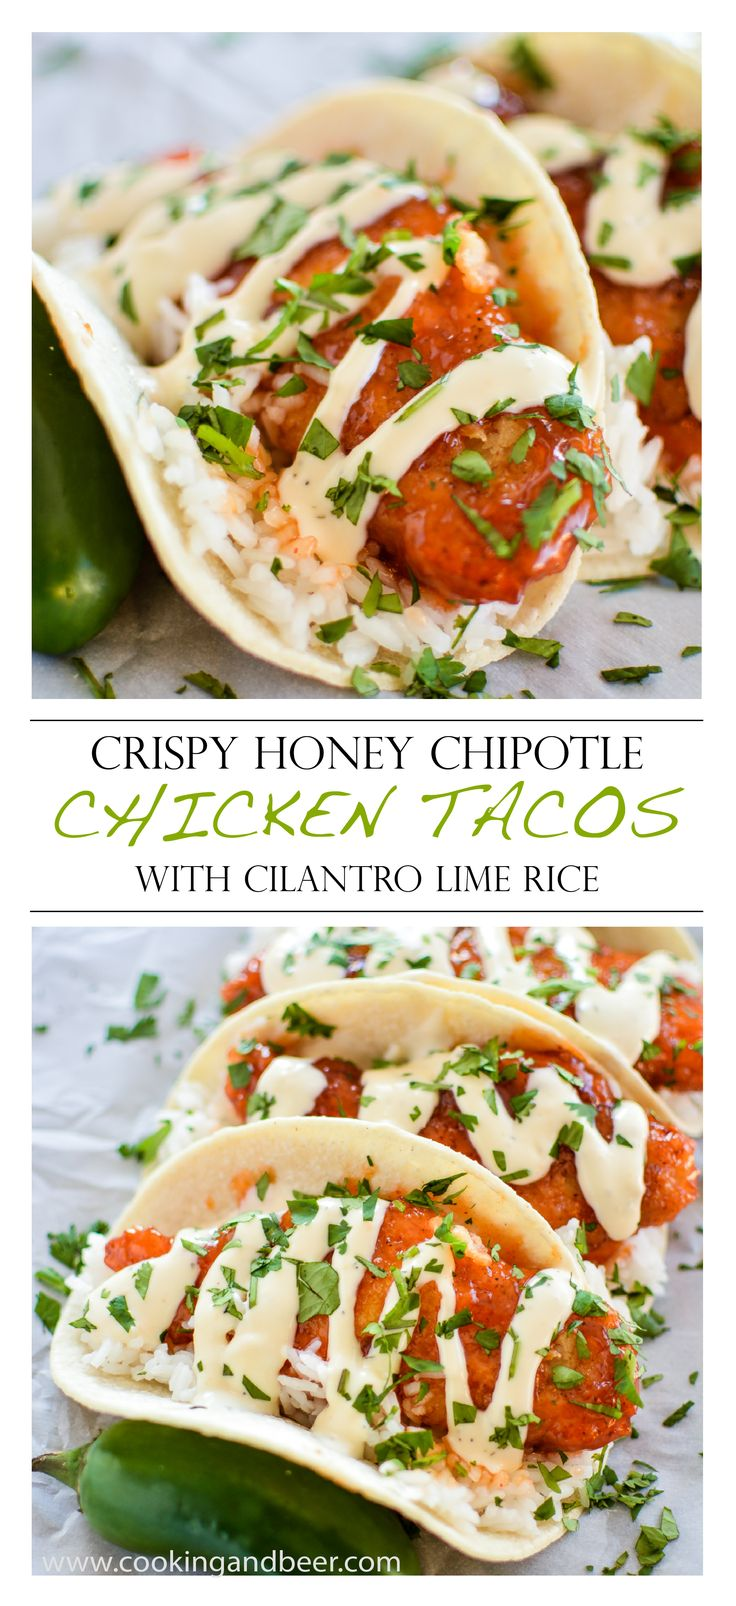 cheap nike padded compression shorts Crispy Honey Chipotle Chicken Tacos with Cilantro Lime Rice | Recipe | Chipotle Chicken, Chicken Tacos and Cilantro Lime Rice